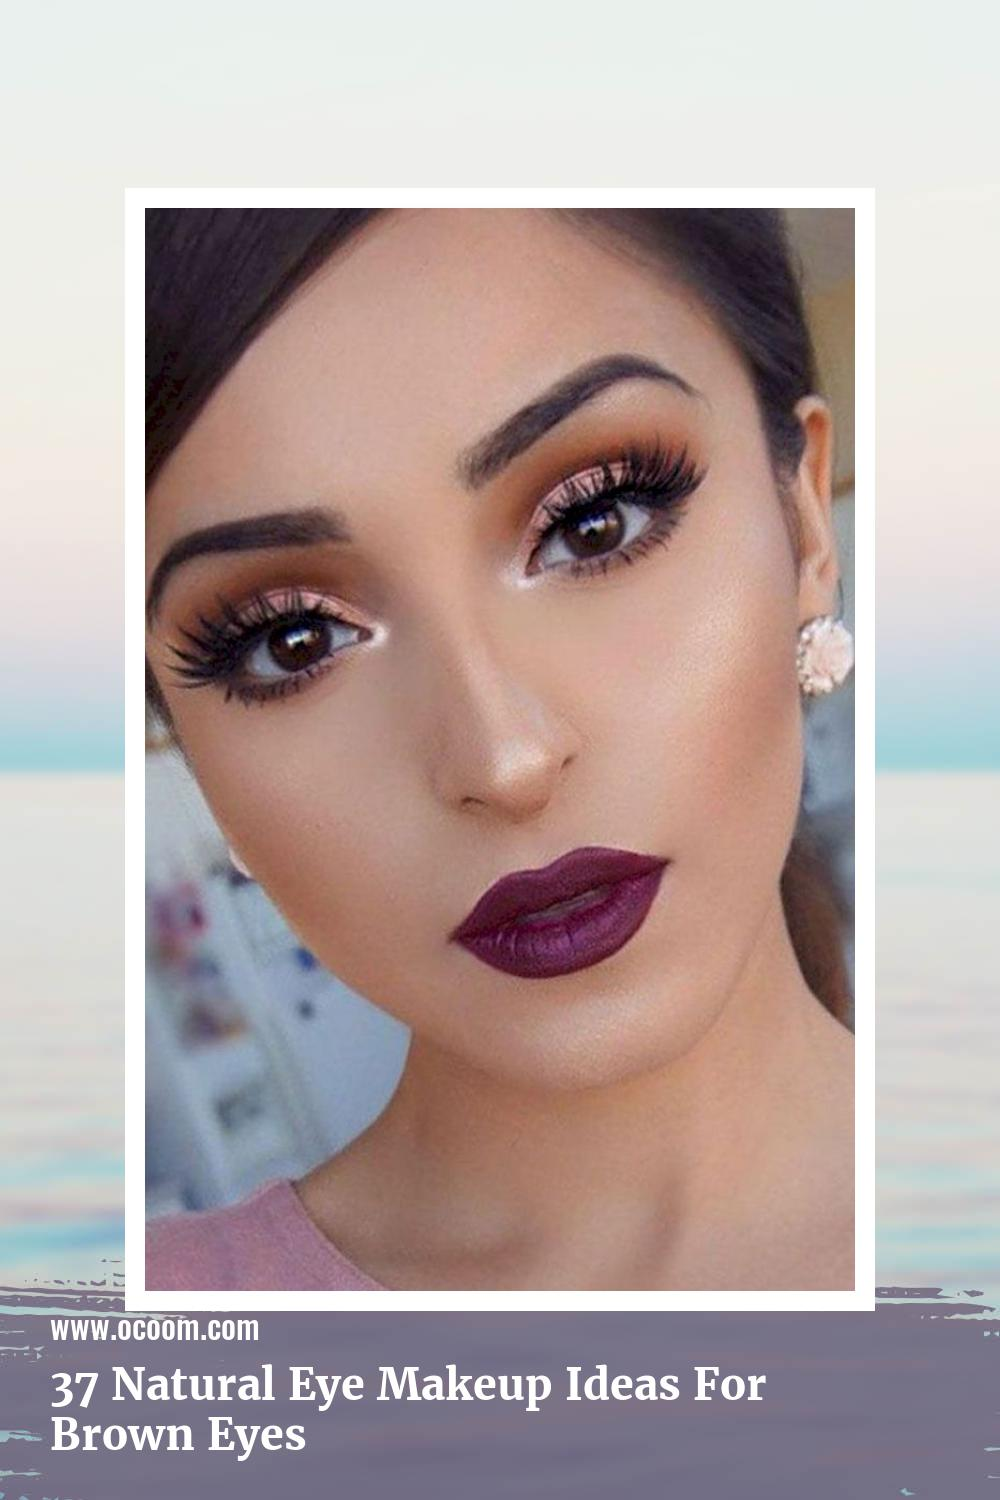 37 Natural Eye Makeup Ideas For Brown Eyes 23